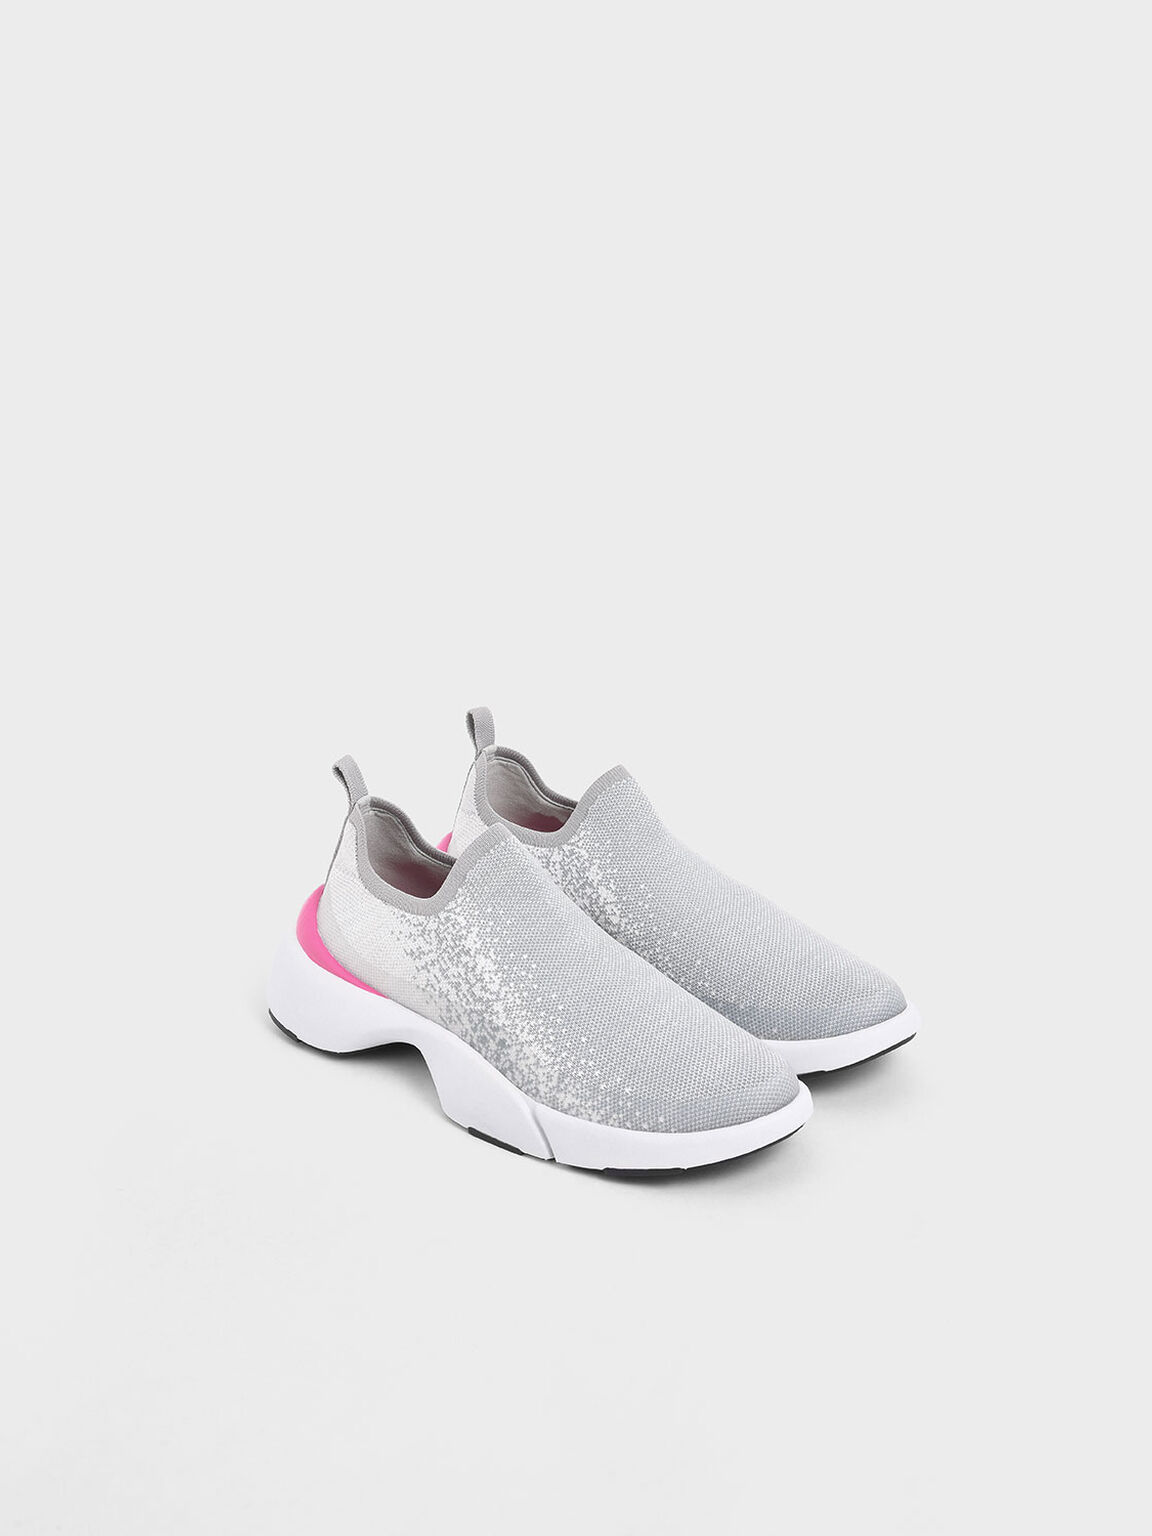 4WARD Collection: Knitted Slip-On Sneakers, Light Grey, hi-res